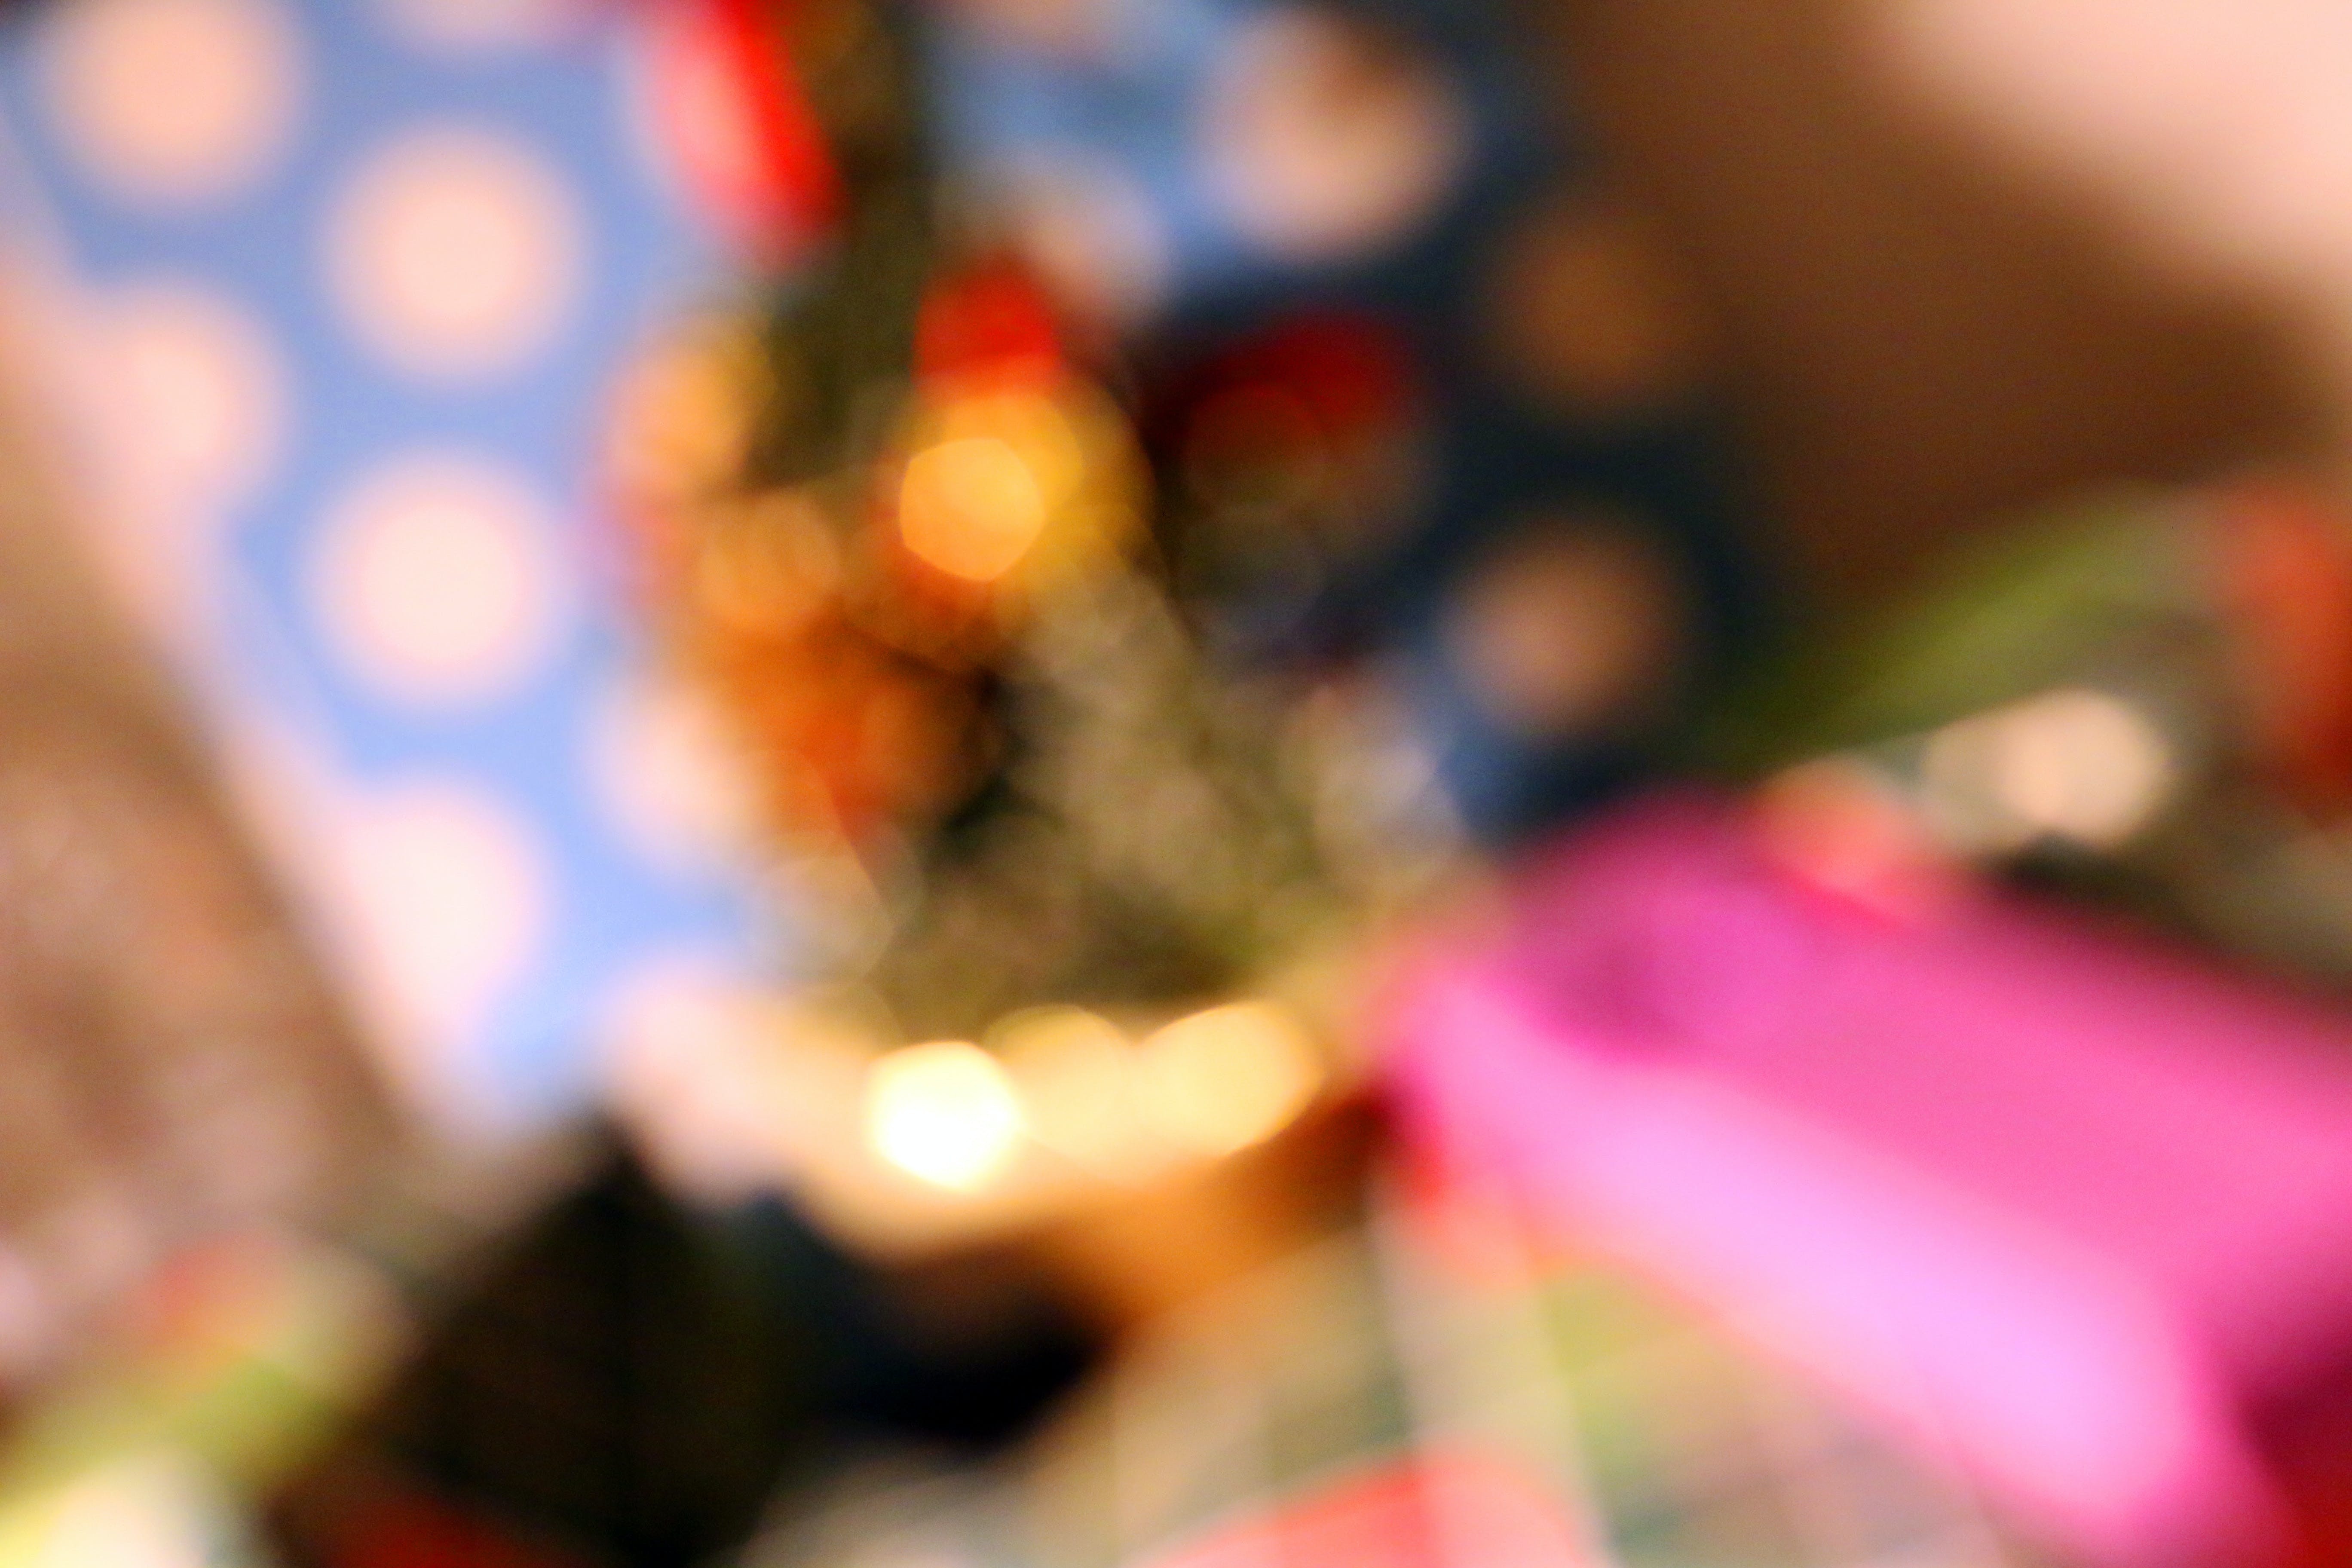 A Blurry Image of Gifts